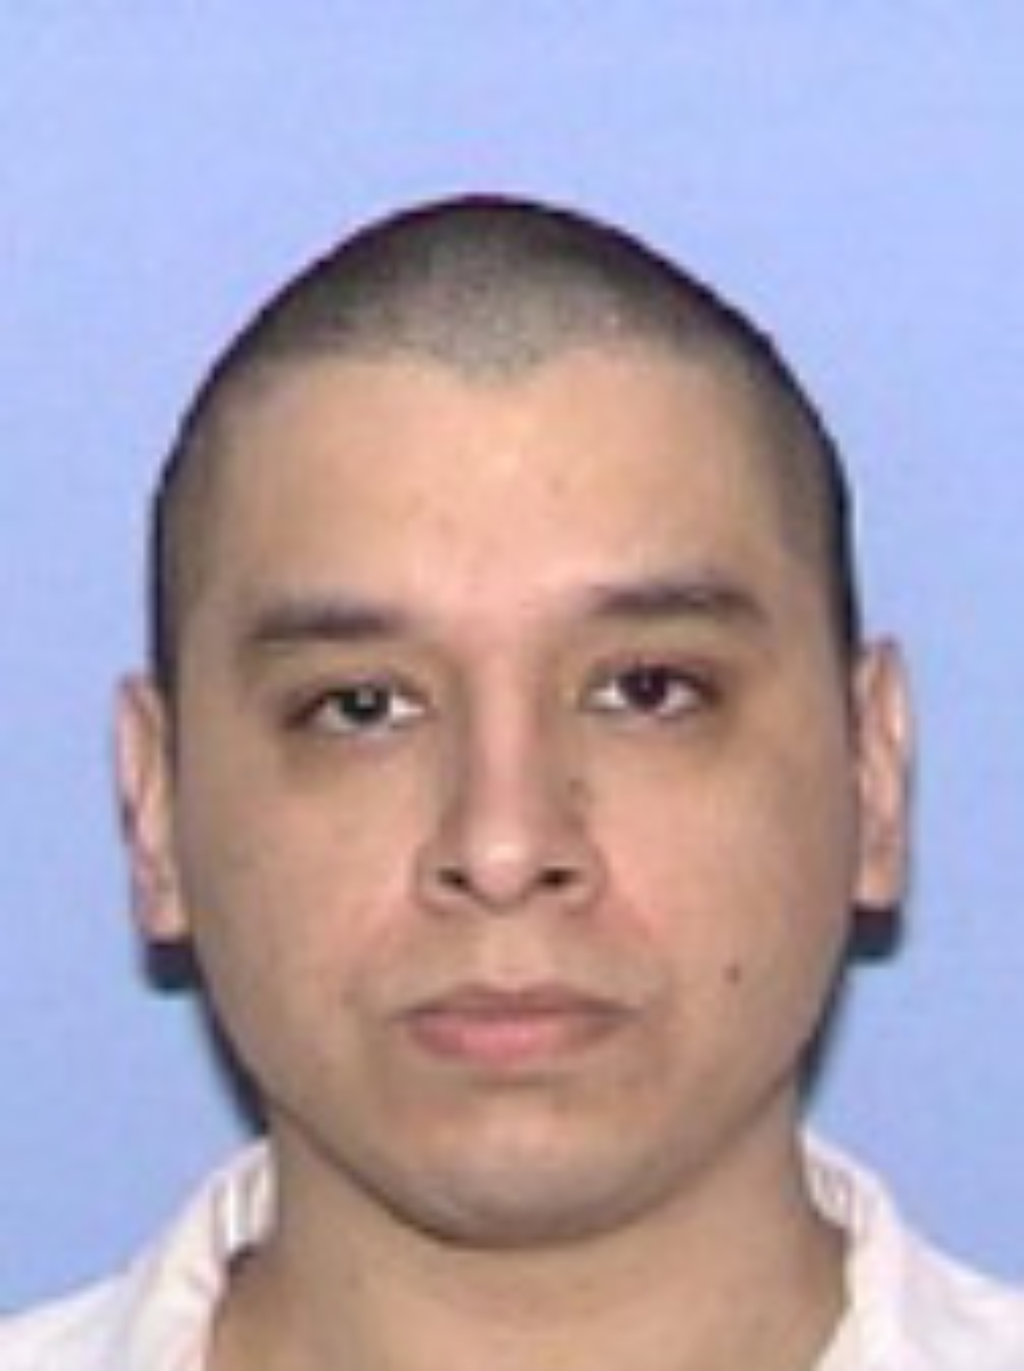 Texas Case Raises Questions of Fairness of Executing Accomplices